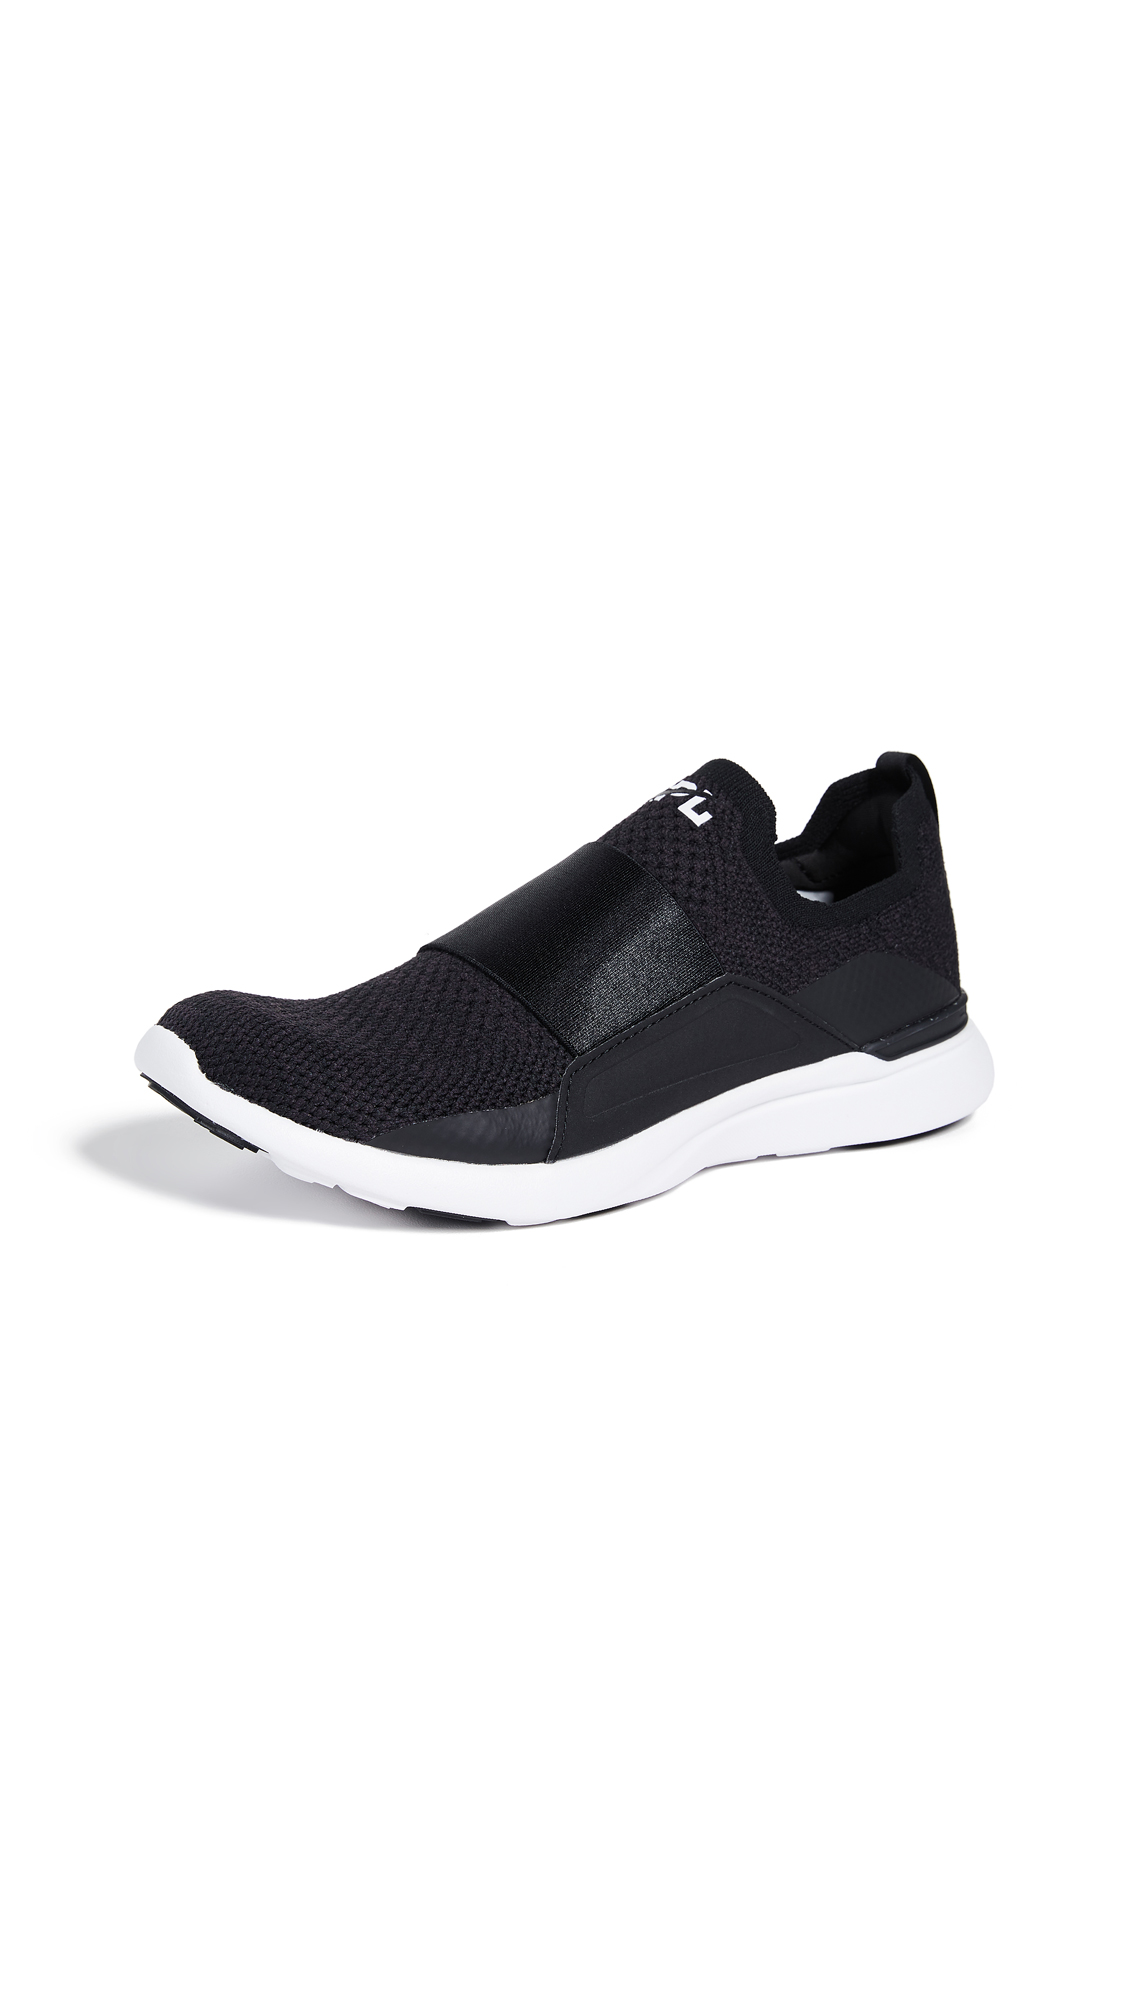 APL: Athletic Propulsion Labs TechLoom Bliss Sneakers - Black/Black/White